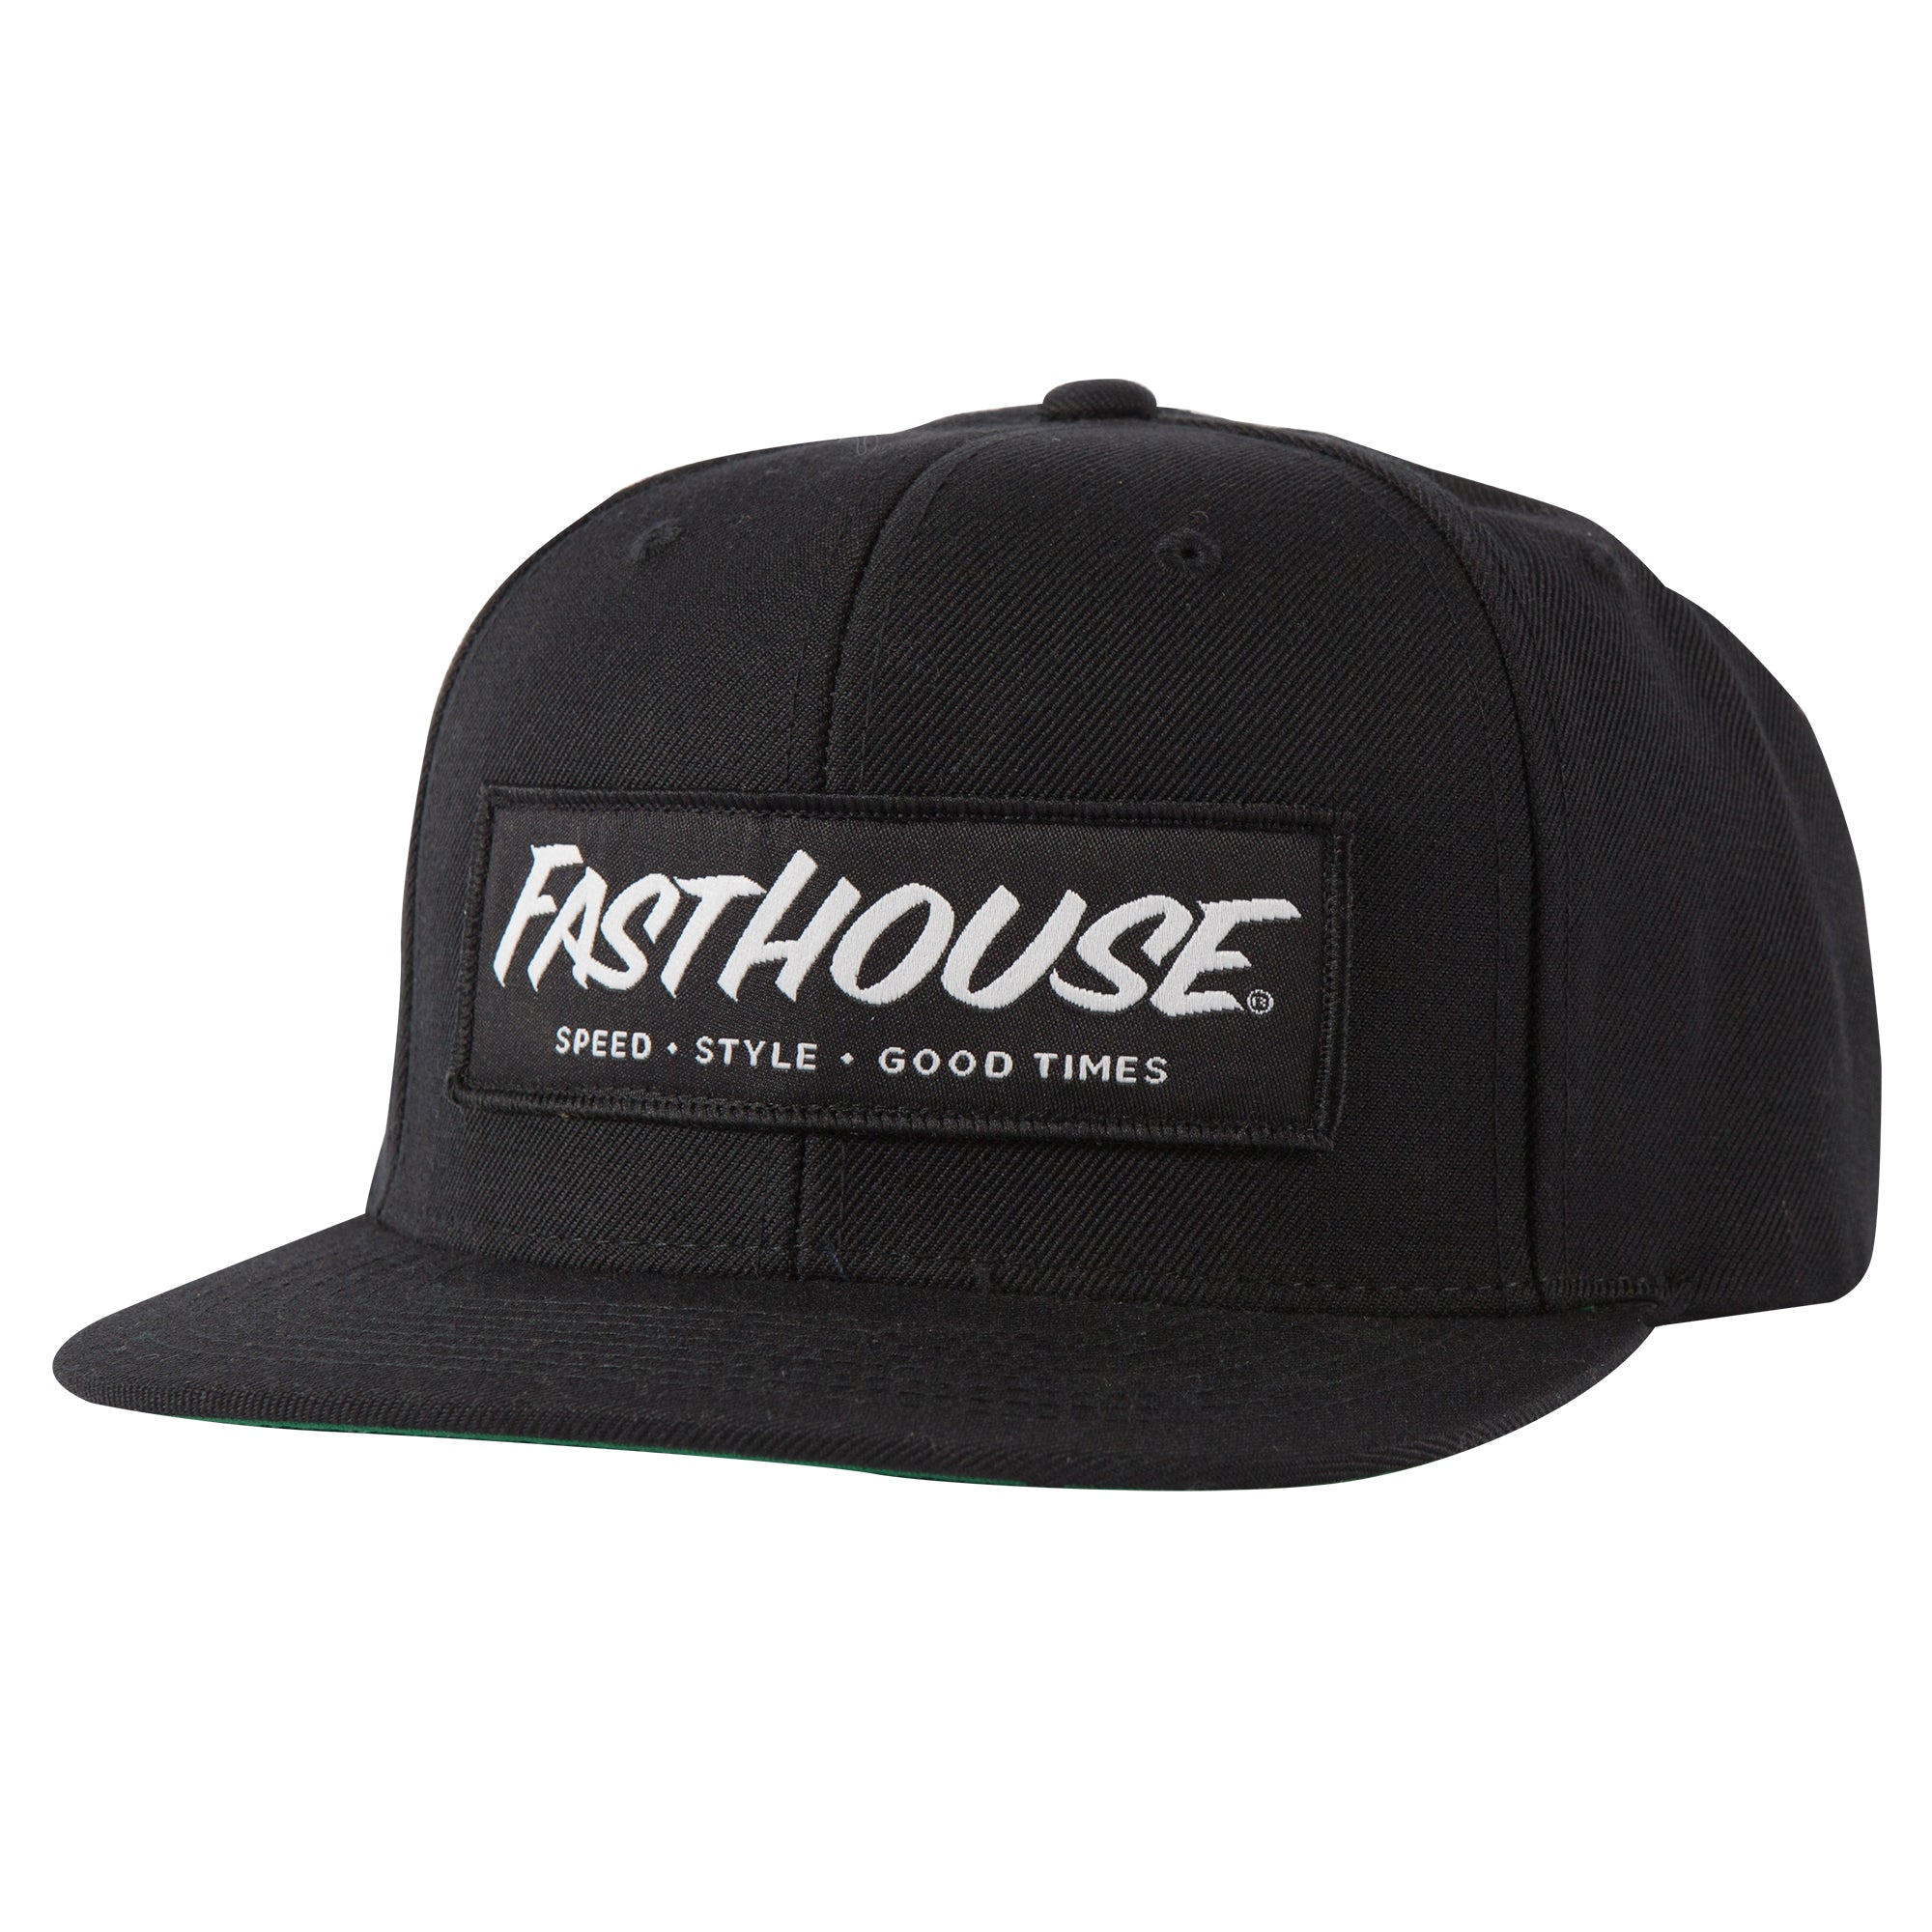 Fasthouse - Speed Style Good Times Hat - Black